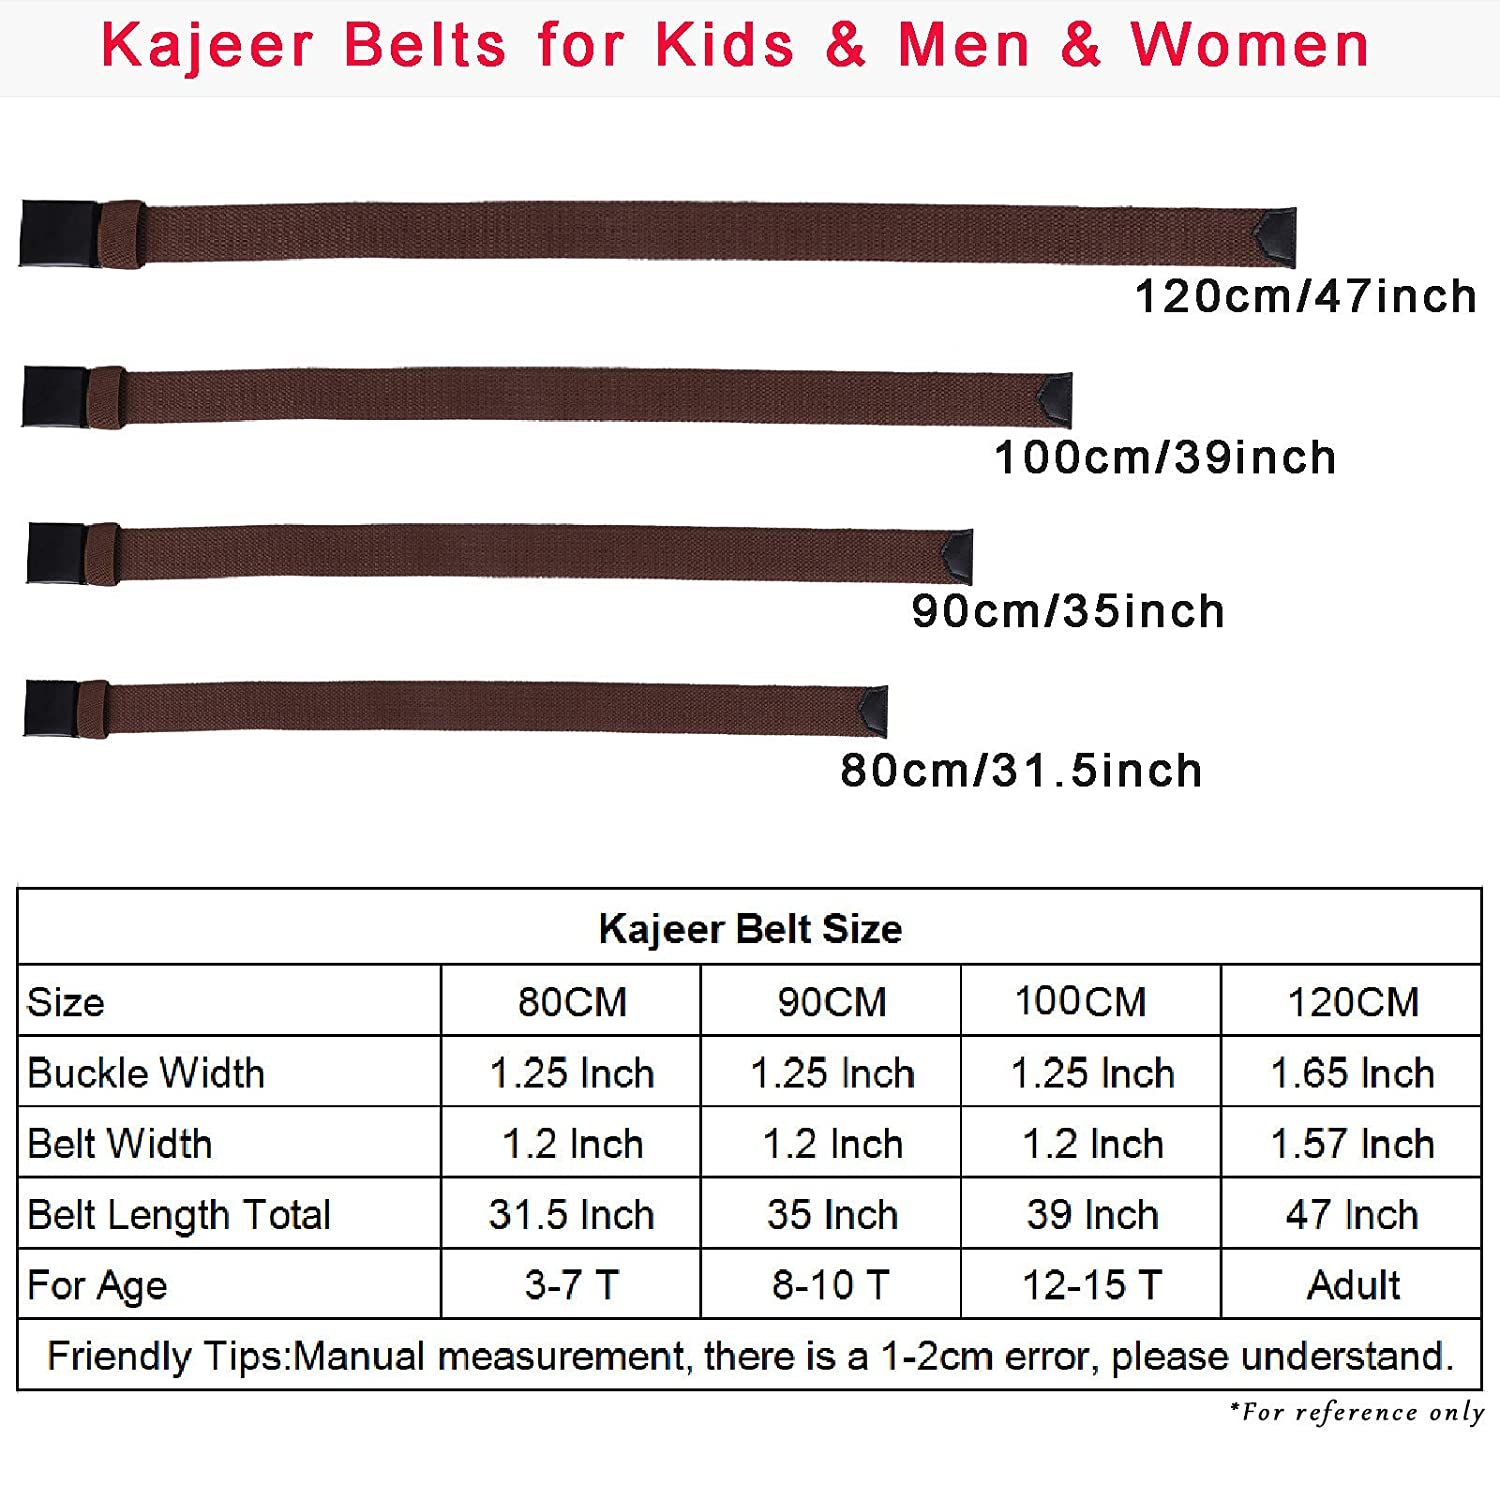 Cut To Fit Adjustable Belts 2Pcs Black, 31.5 2Pack Uniform Belt with Flip Top Buckle for Kids Boys Girls 80CM Boys Mans Canvas Web Belts